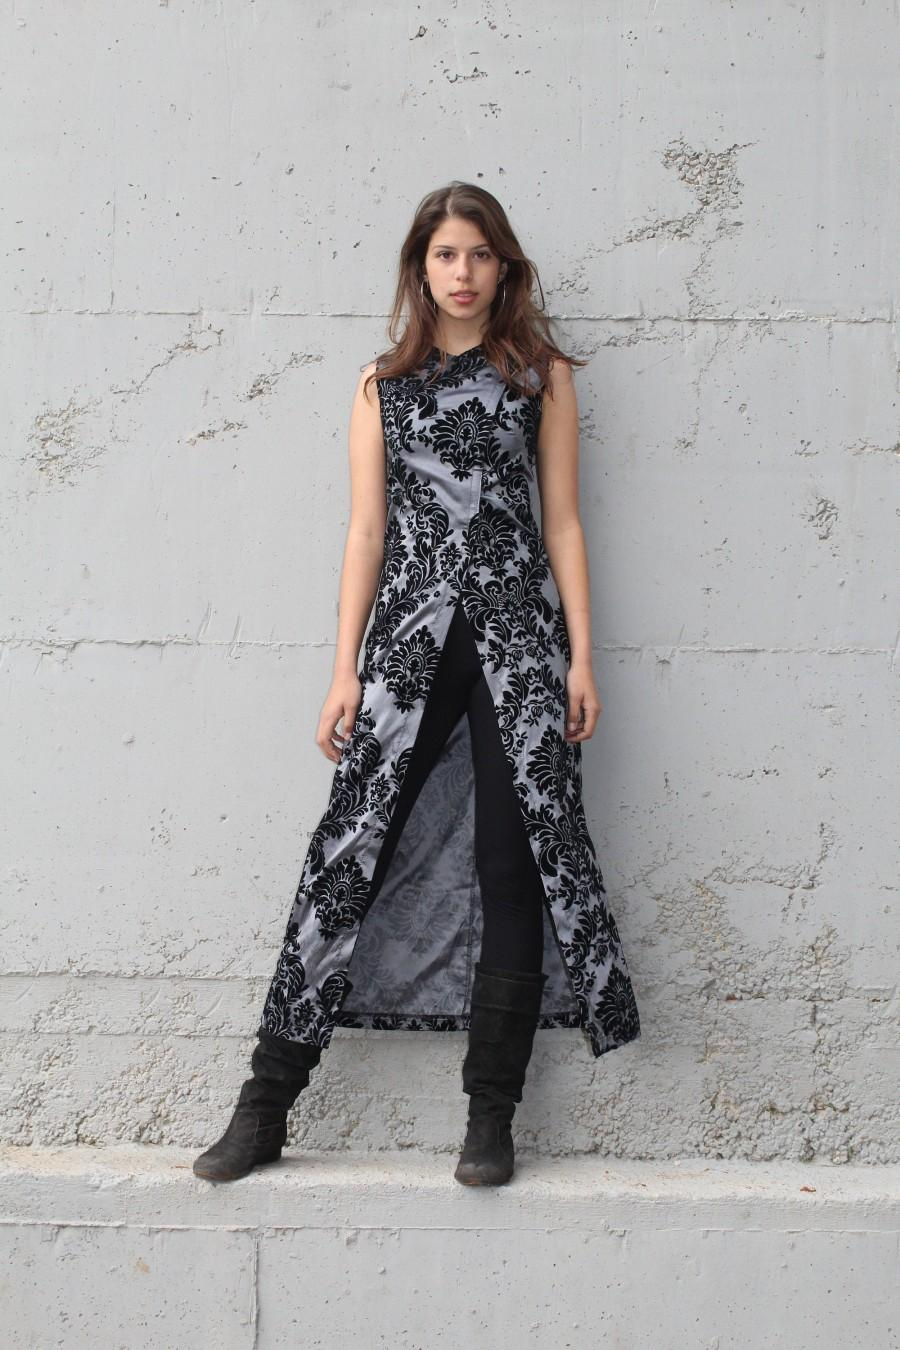 Wedding - Tailored Black and Silver Evening Tunic Dress, Chinese Style Maxi Dress, Mother of Groom or Bride Suit, Women Special Occasion Dress